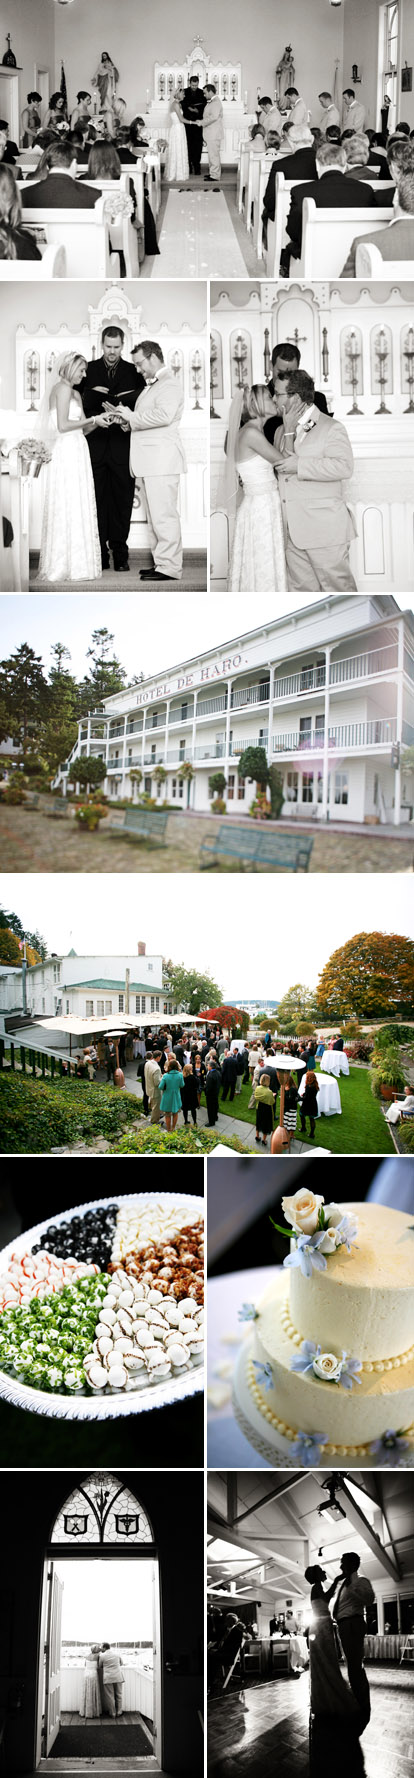 Casual Pacific Northwest San Juan Island wedding , wedding ceremony and reception, images by Riso Studio